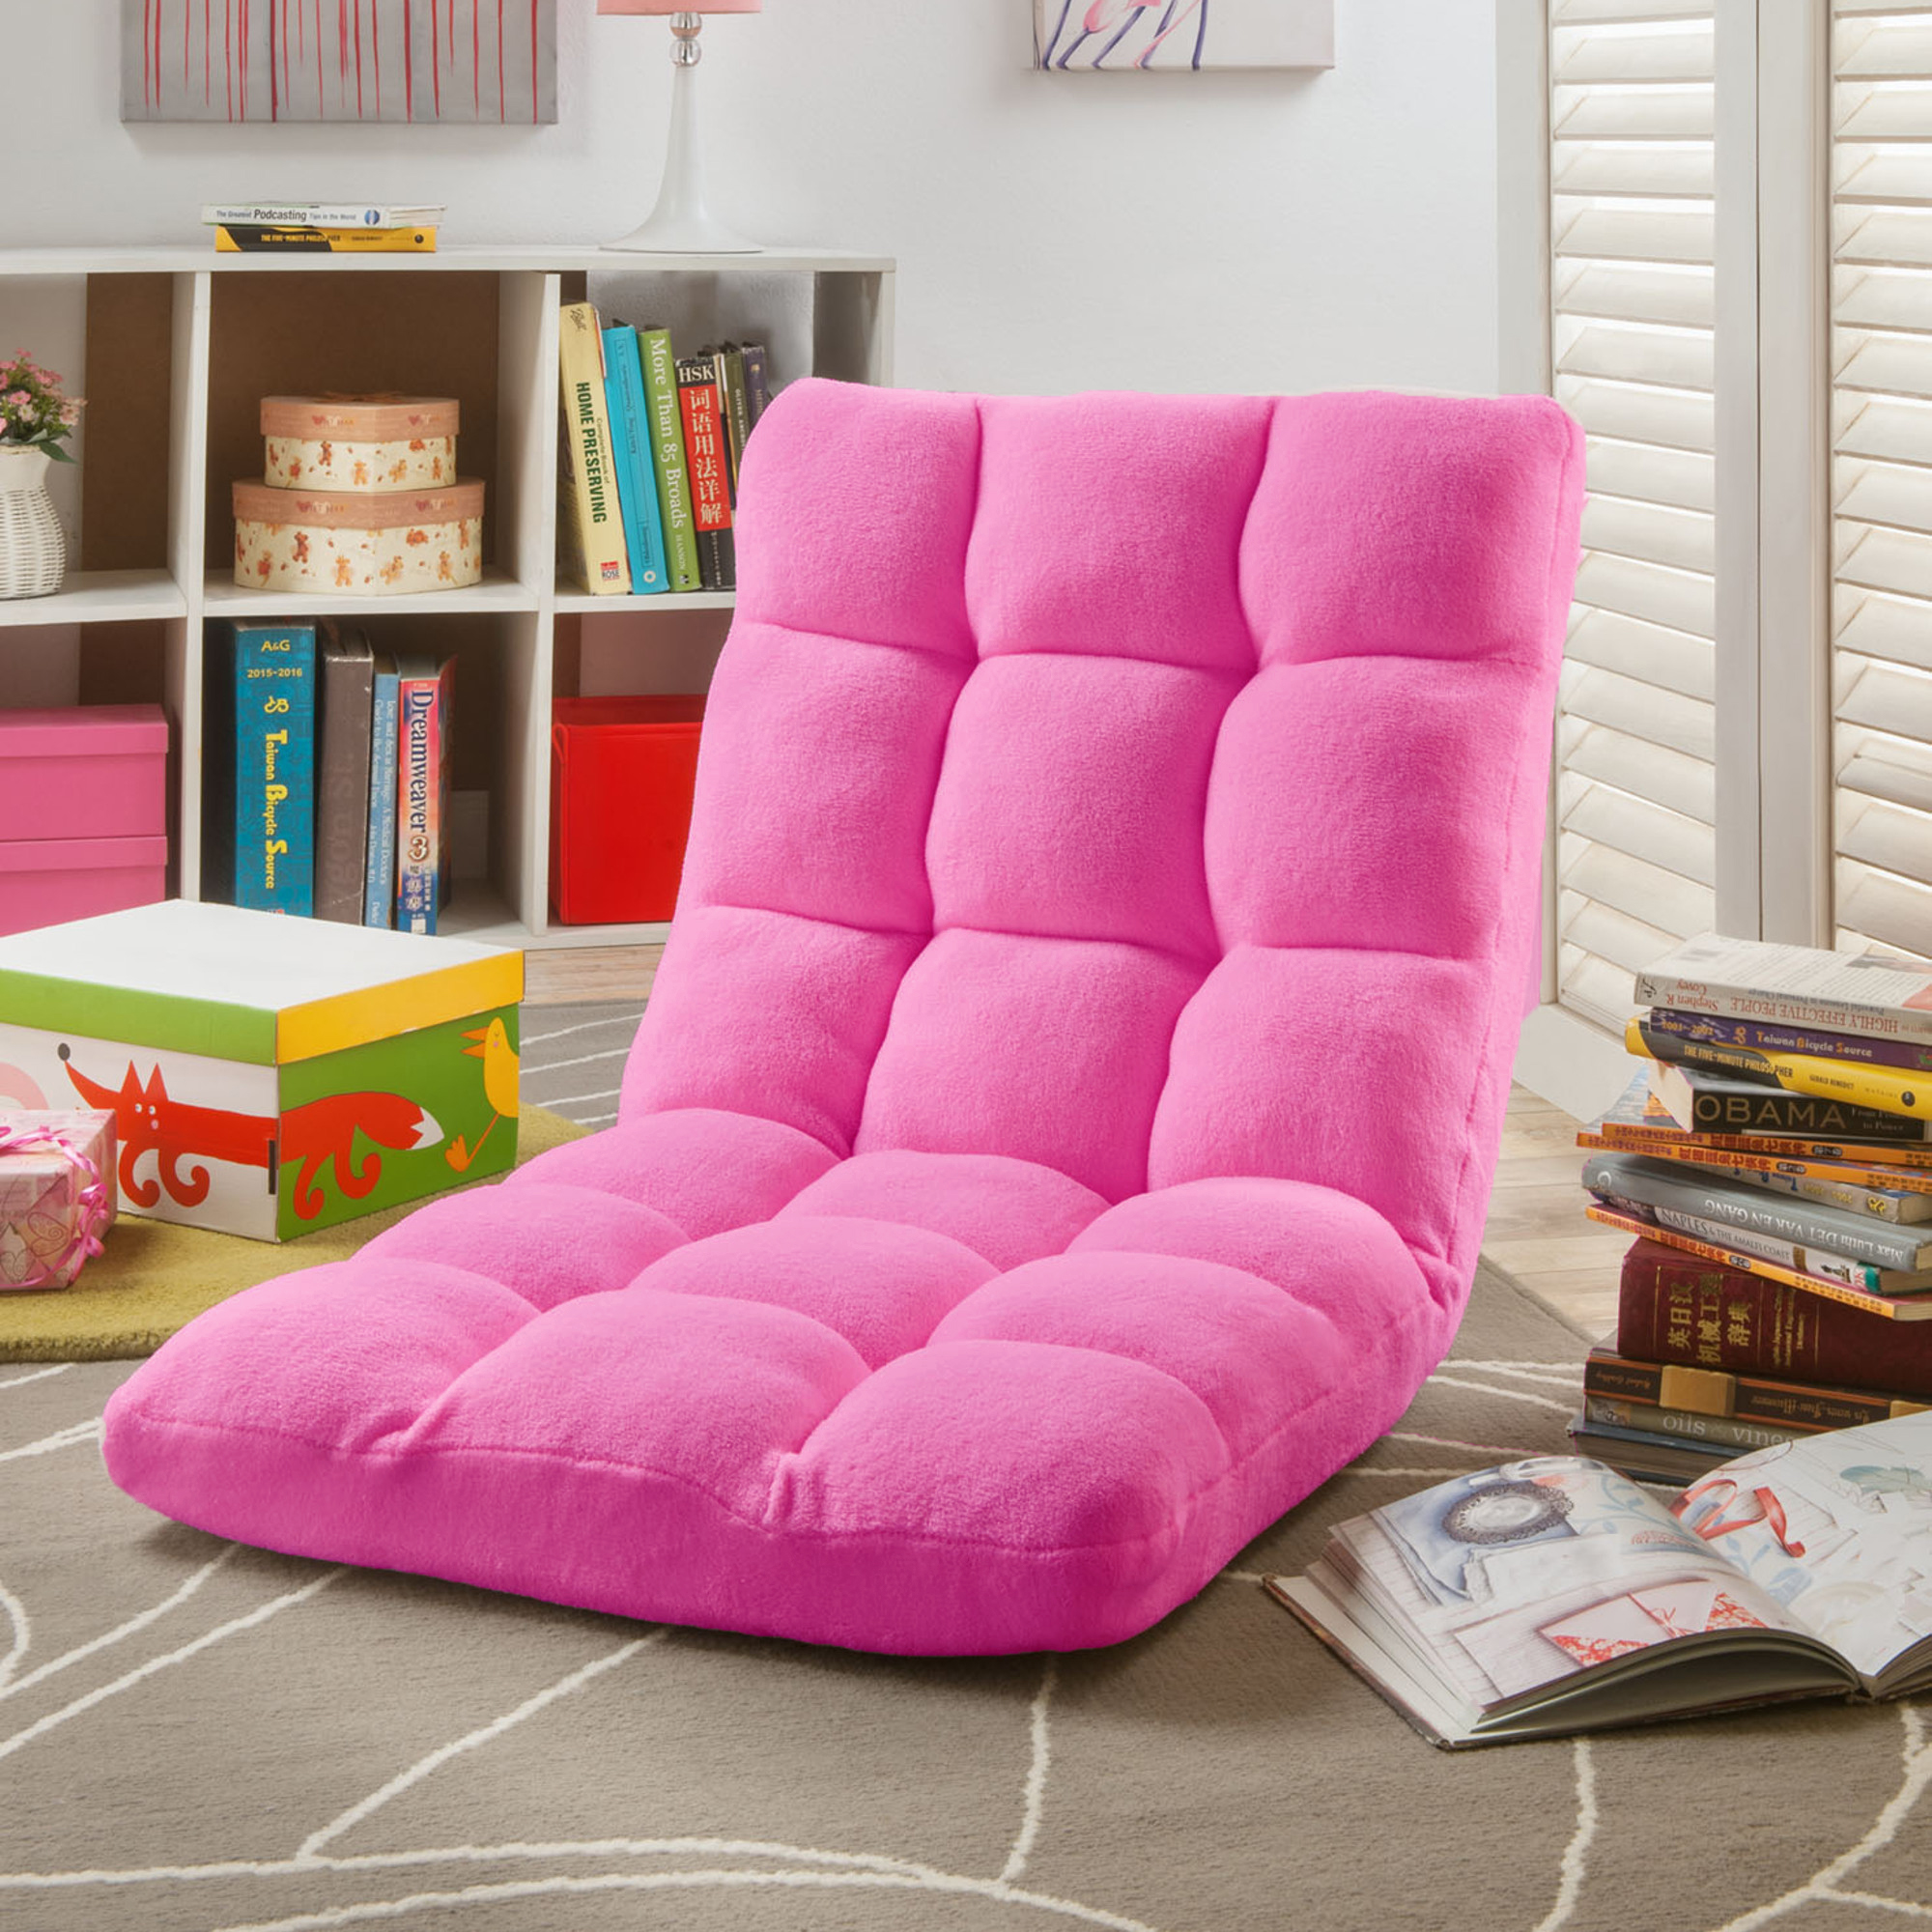 Microplush Modern Armless Quilted Recliner Chair with foam filling and steel tube frame - Pink